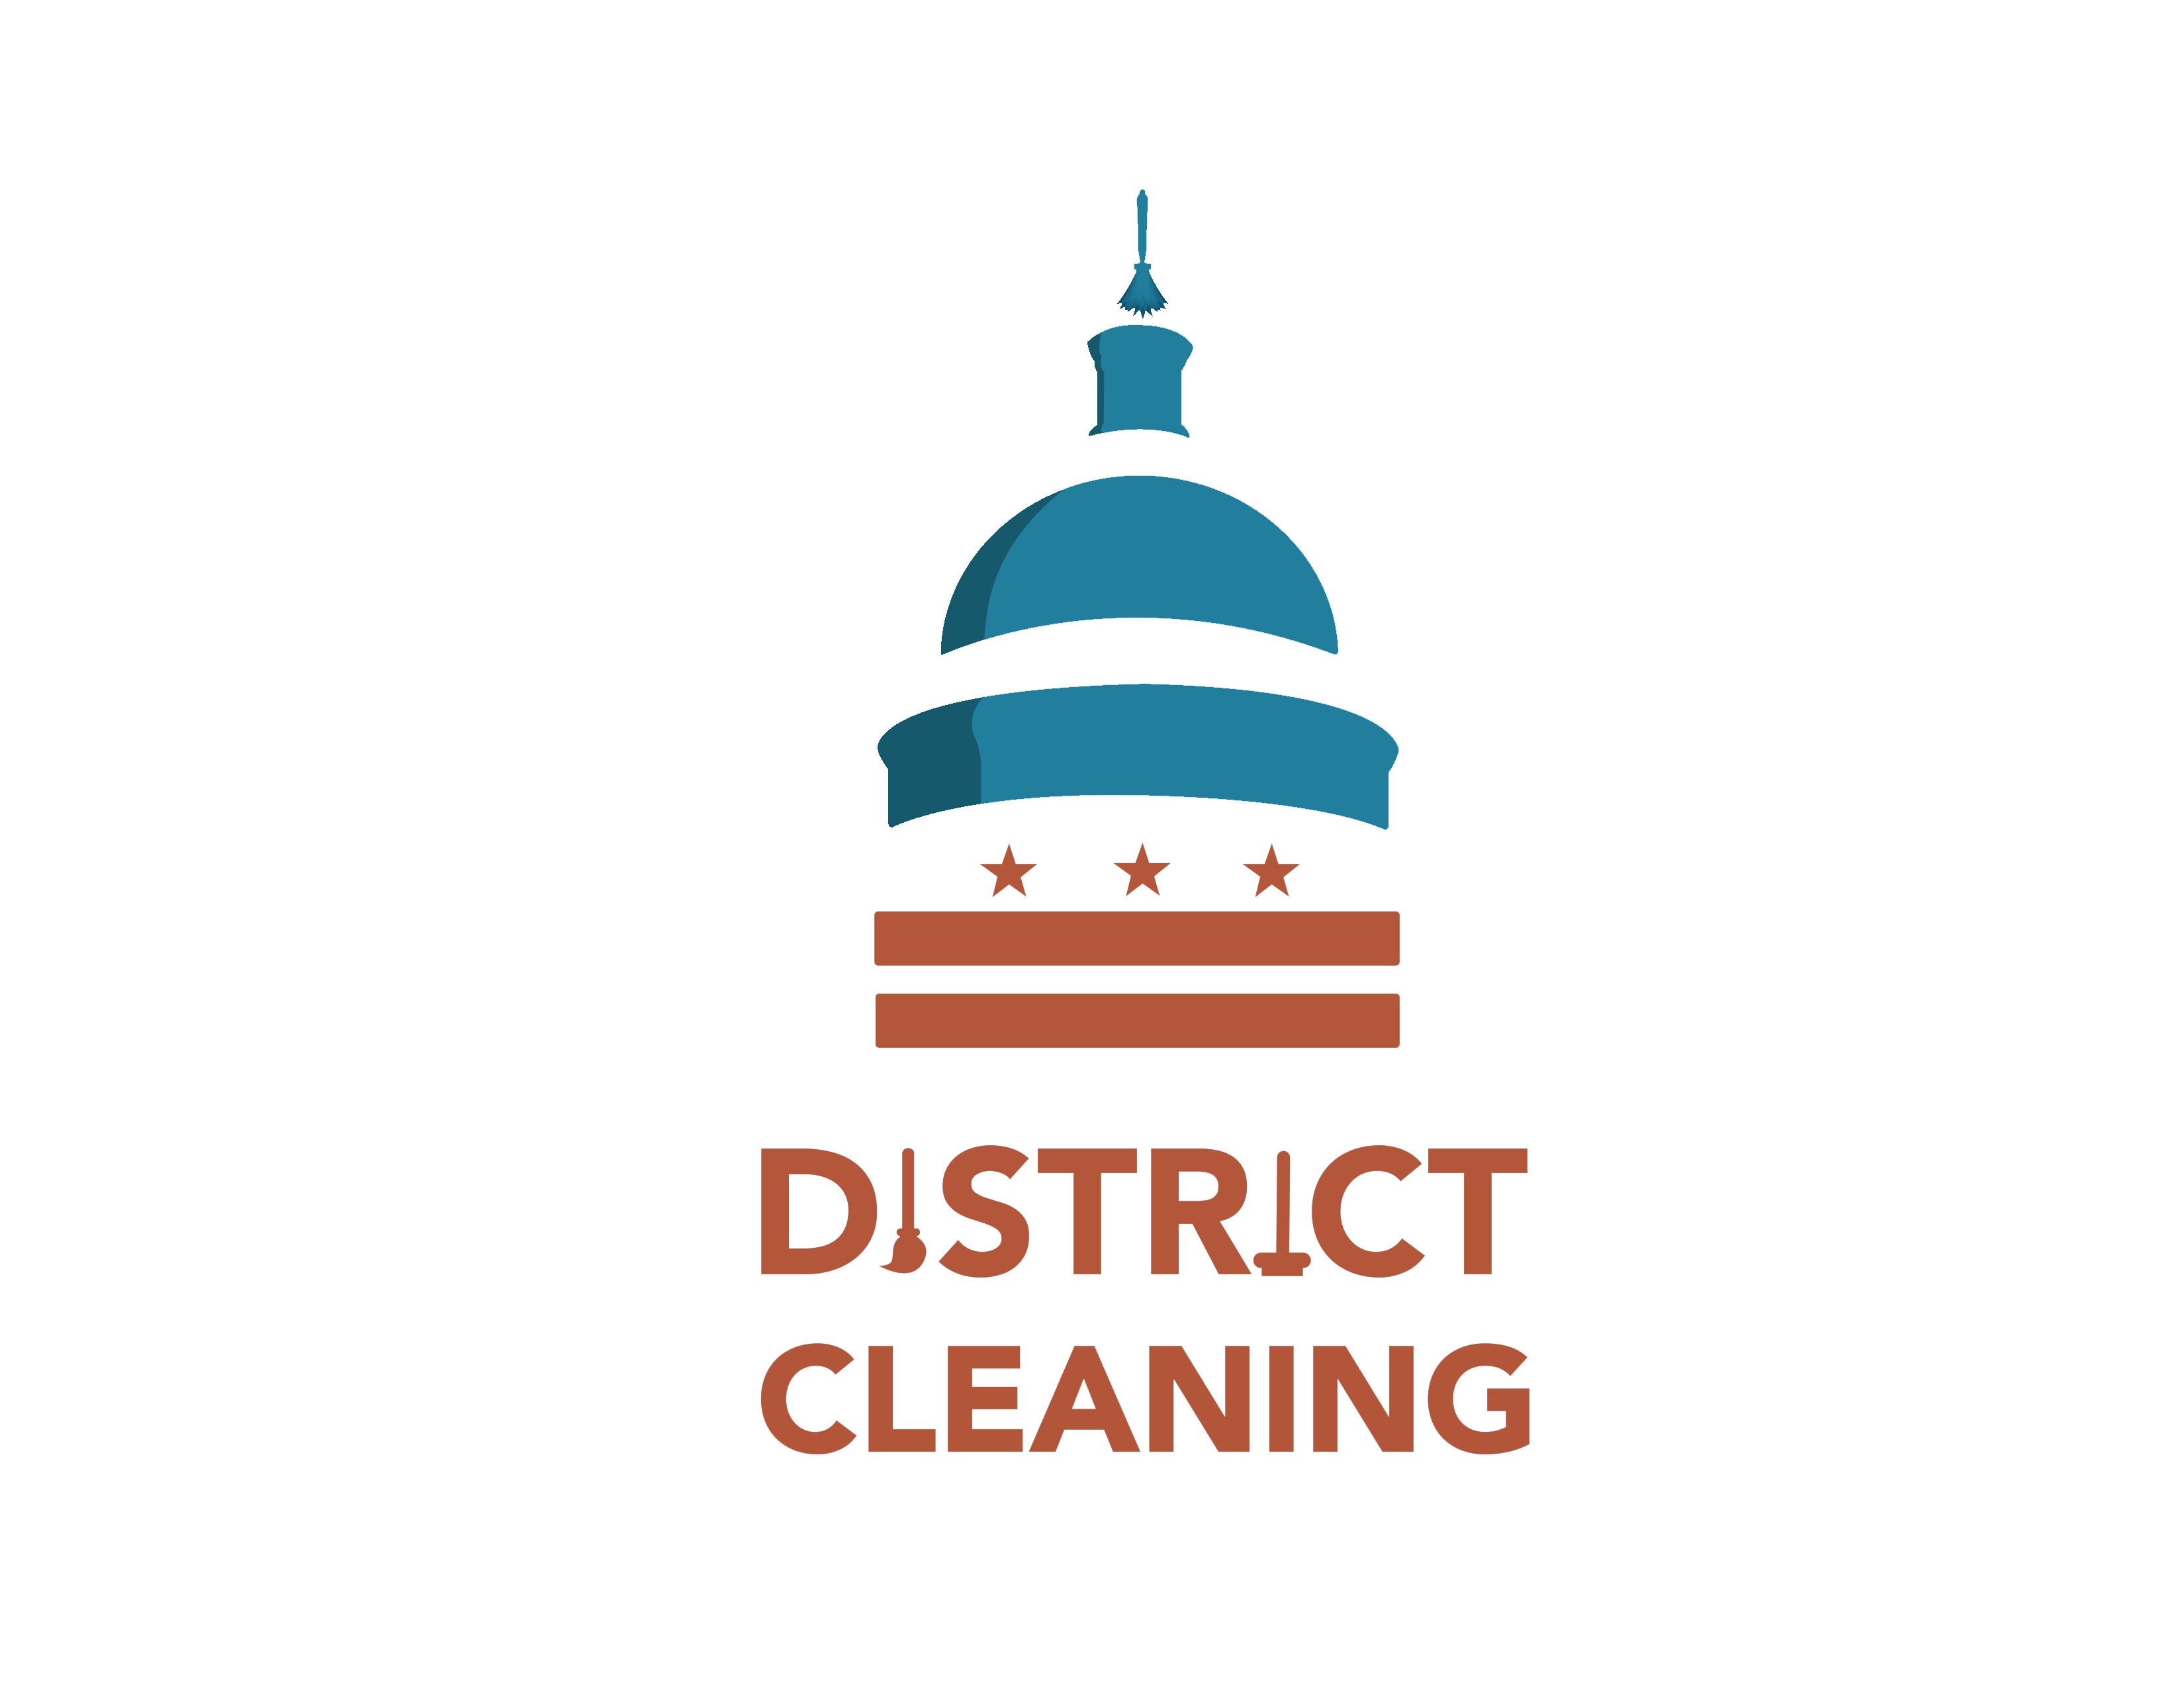 District Cleaning